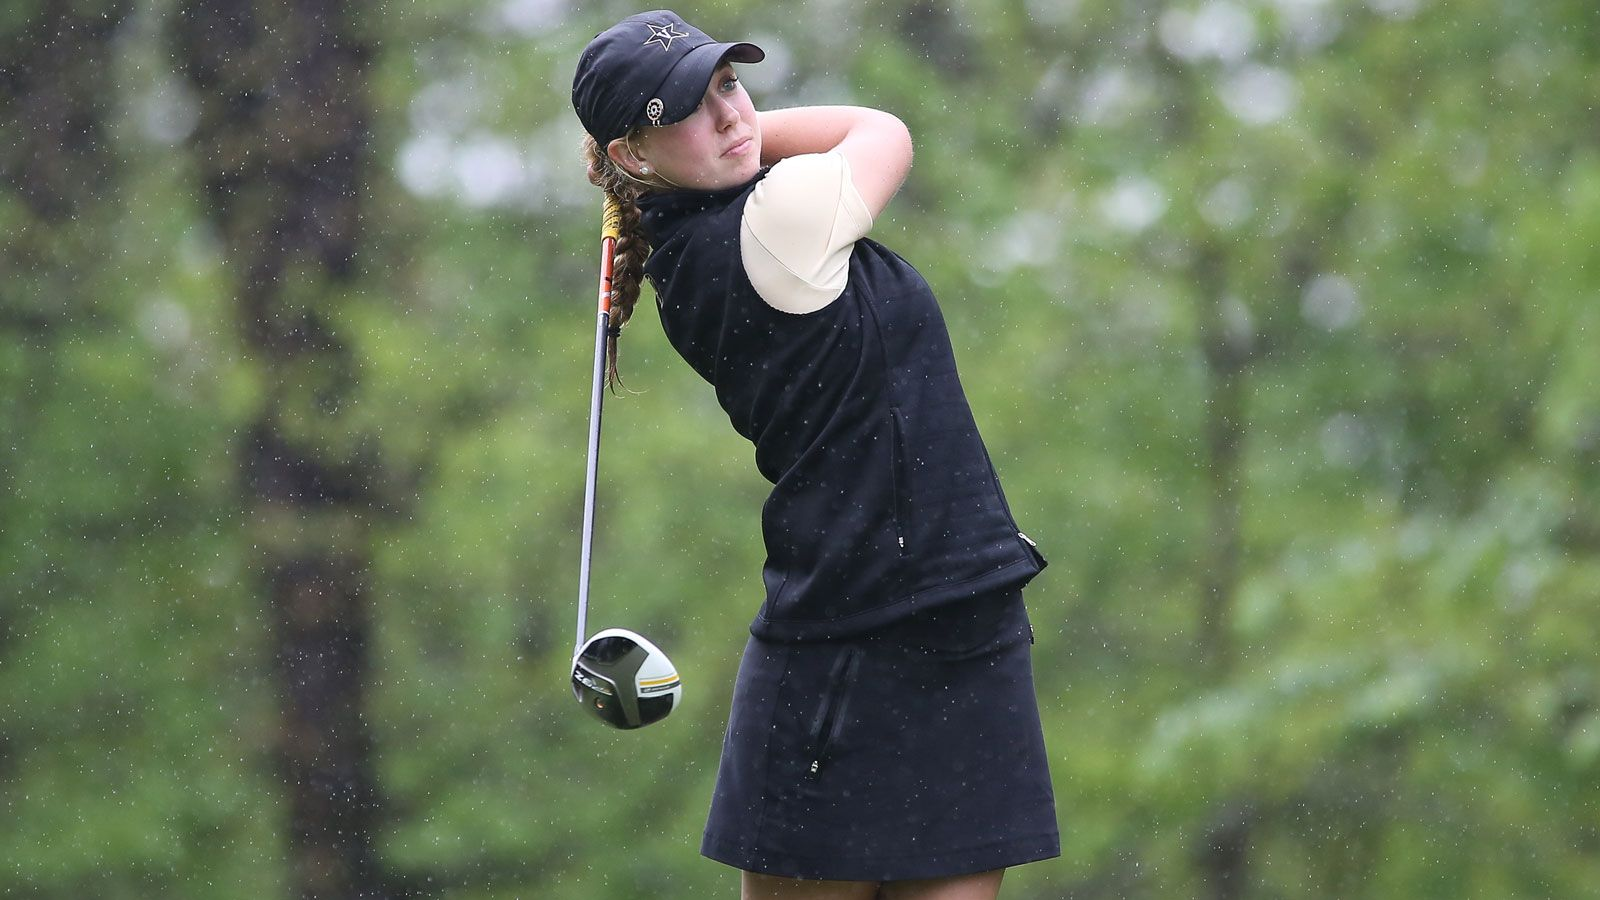 Women's golf teams tied after first round